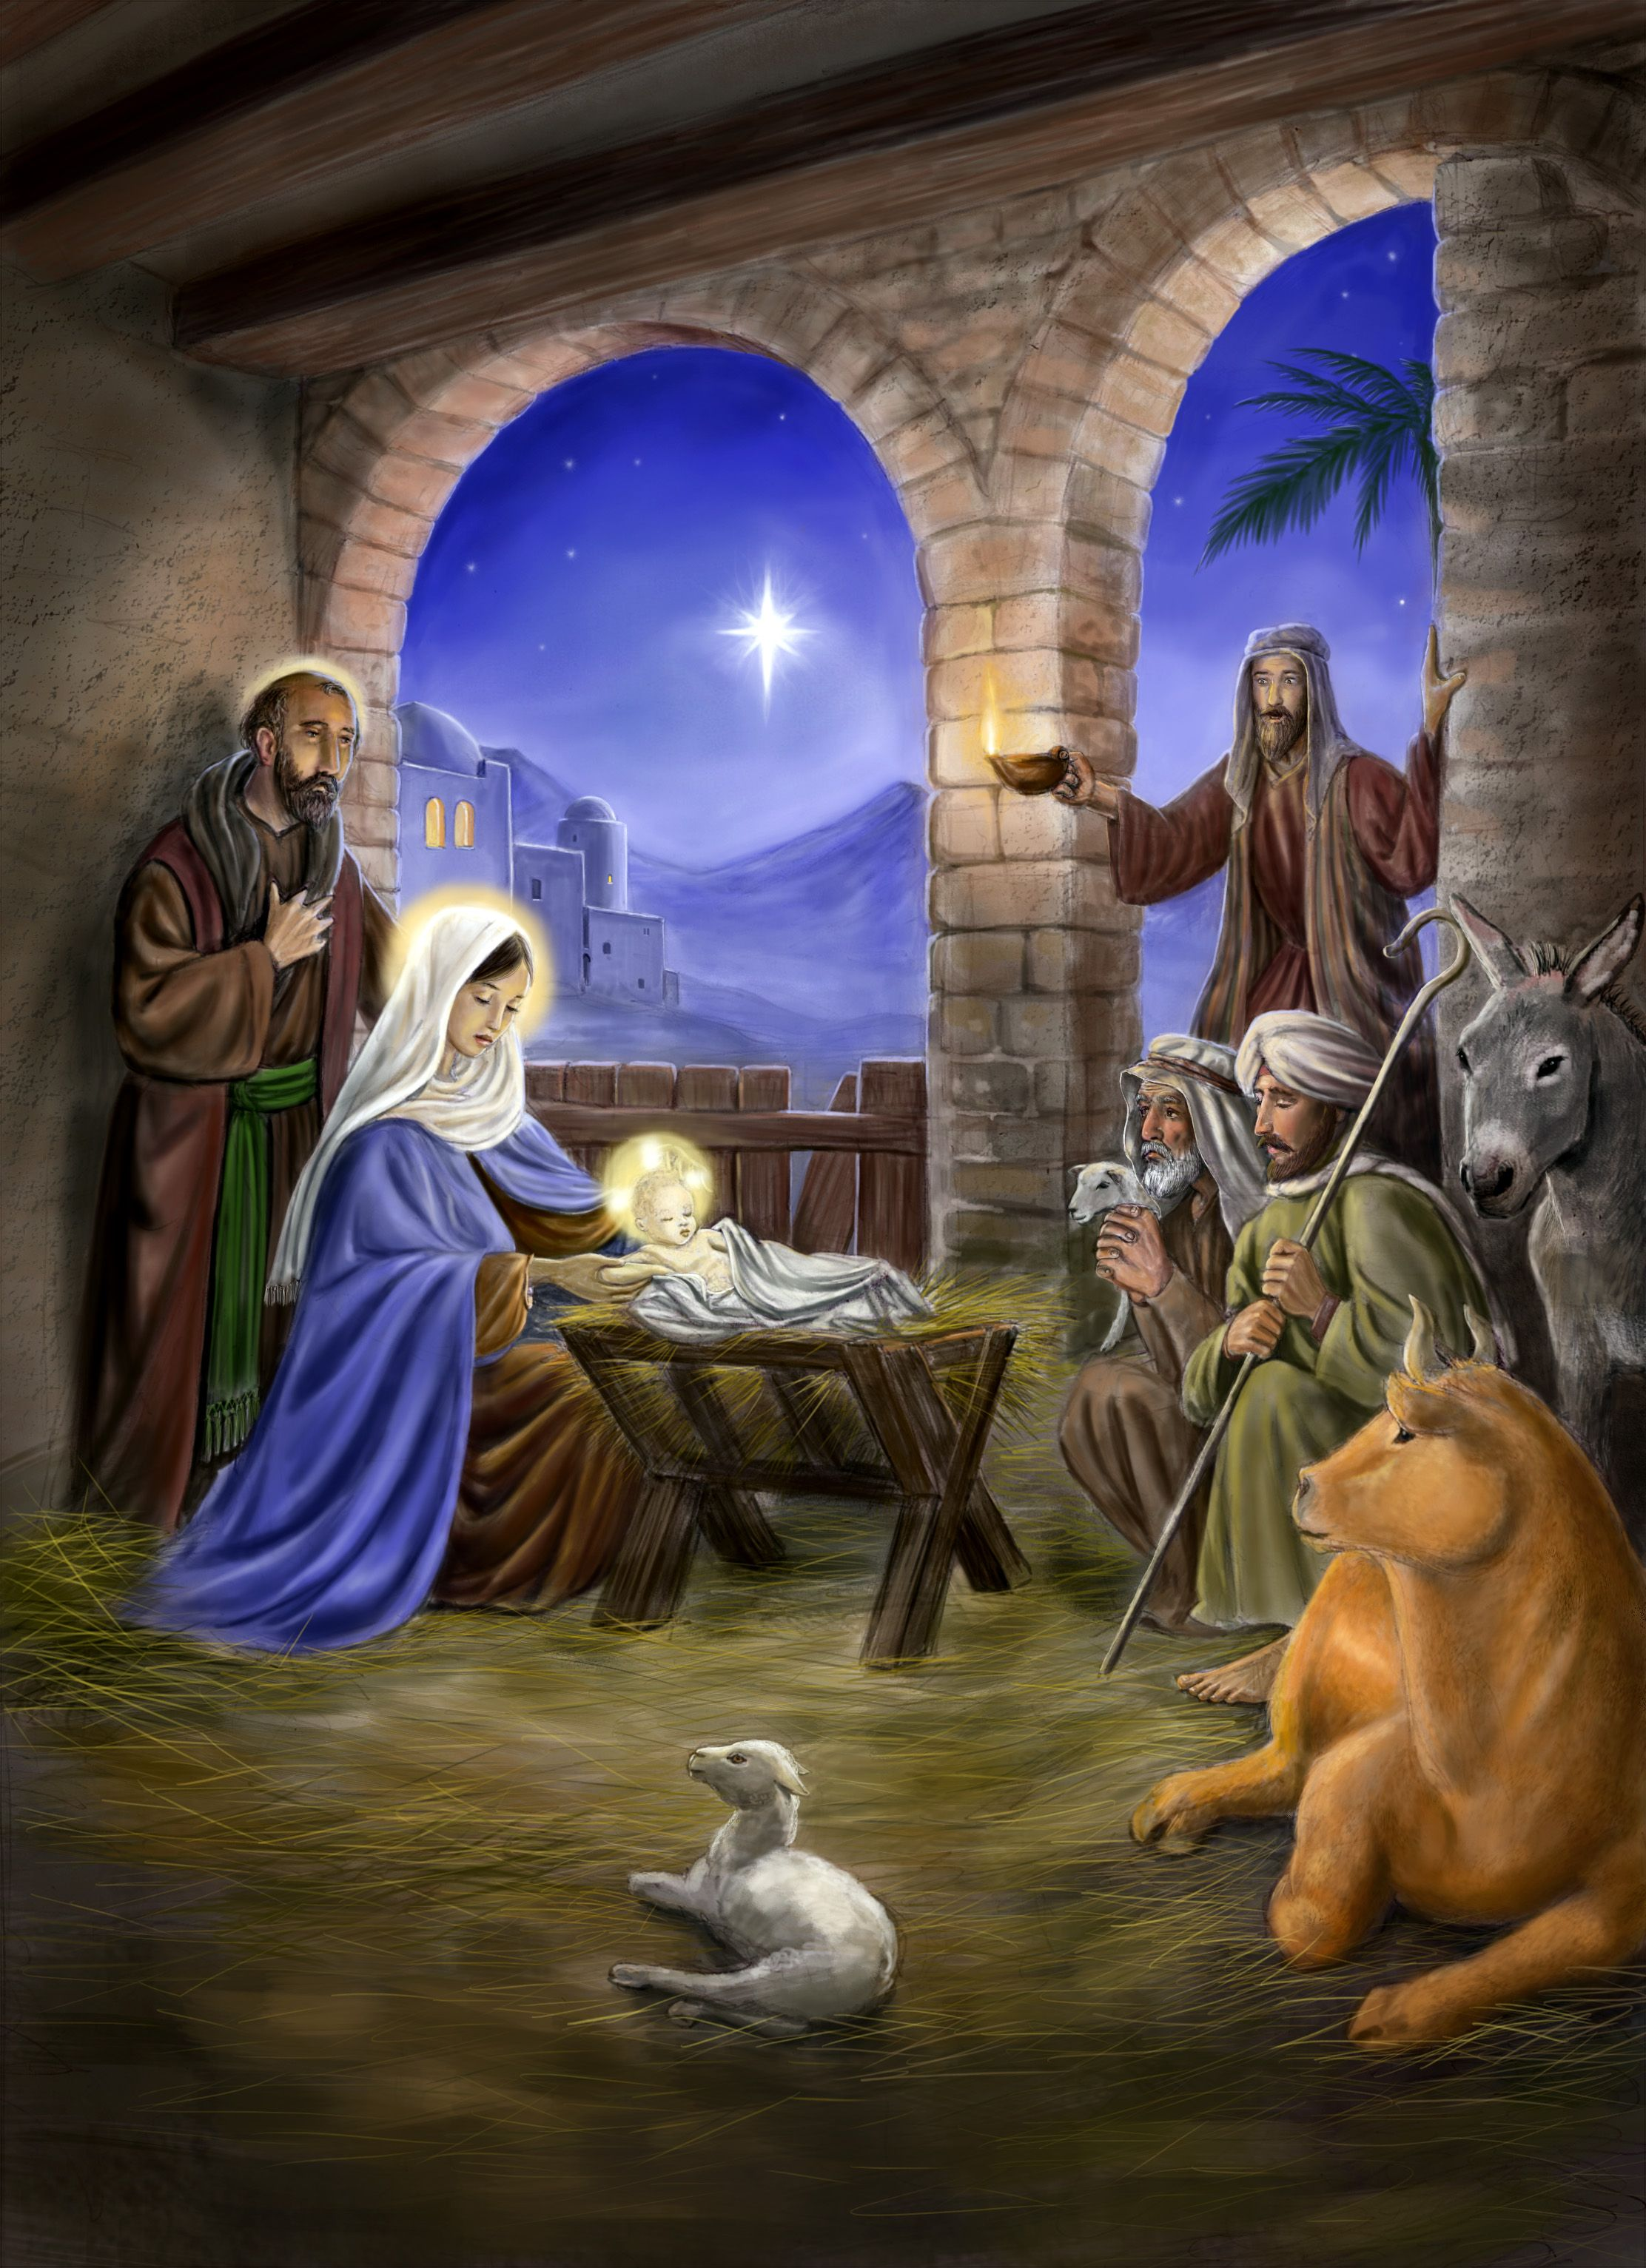 [75+] Free Nativity Scene Wallpaper on WallpaperSafari